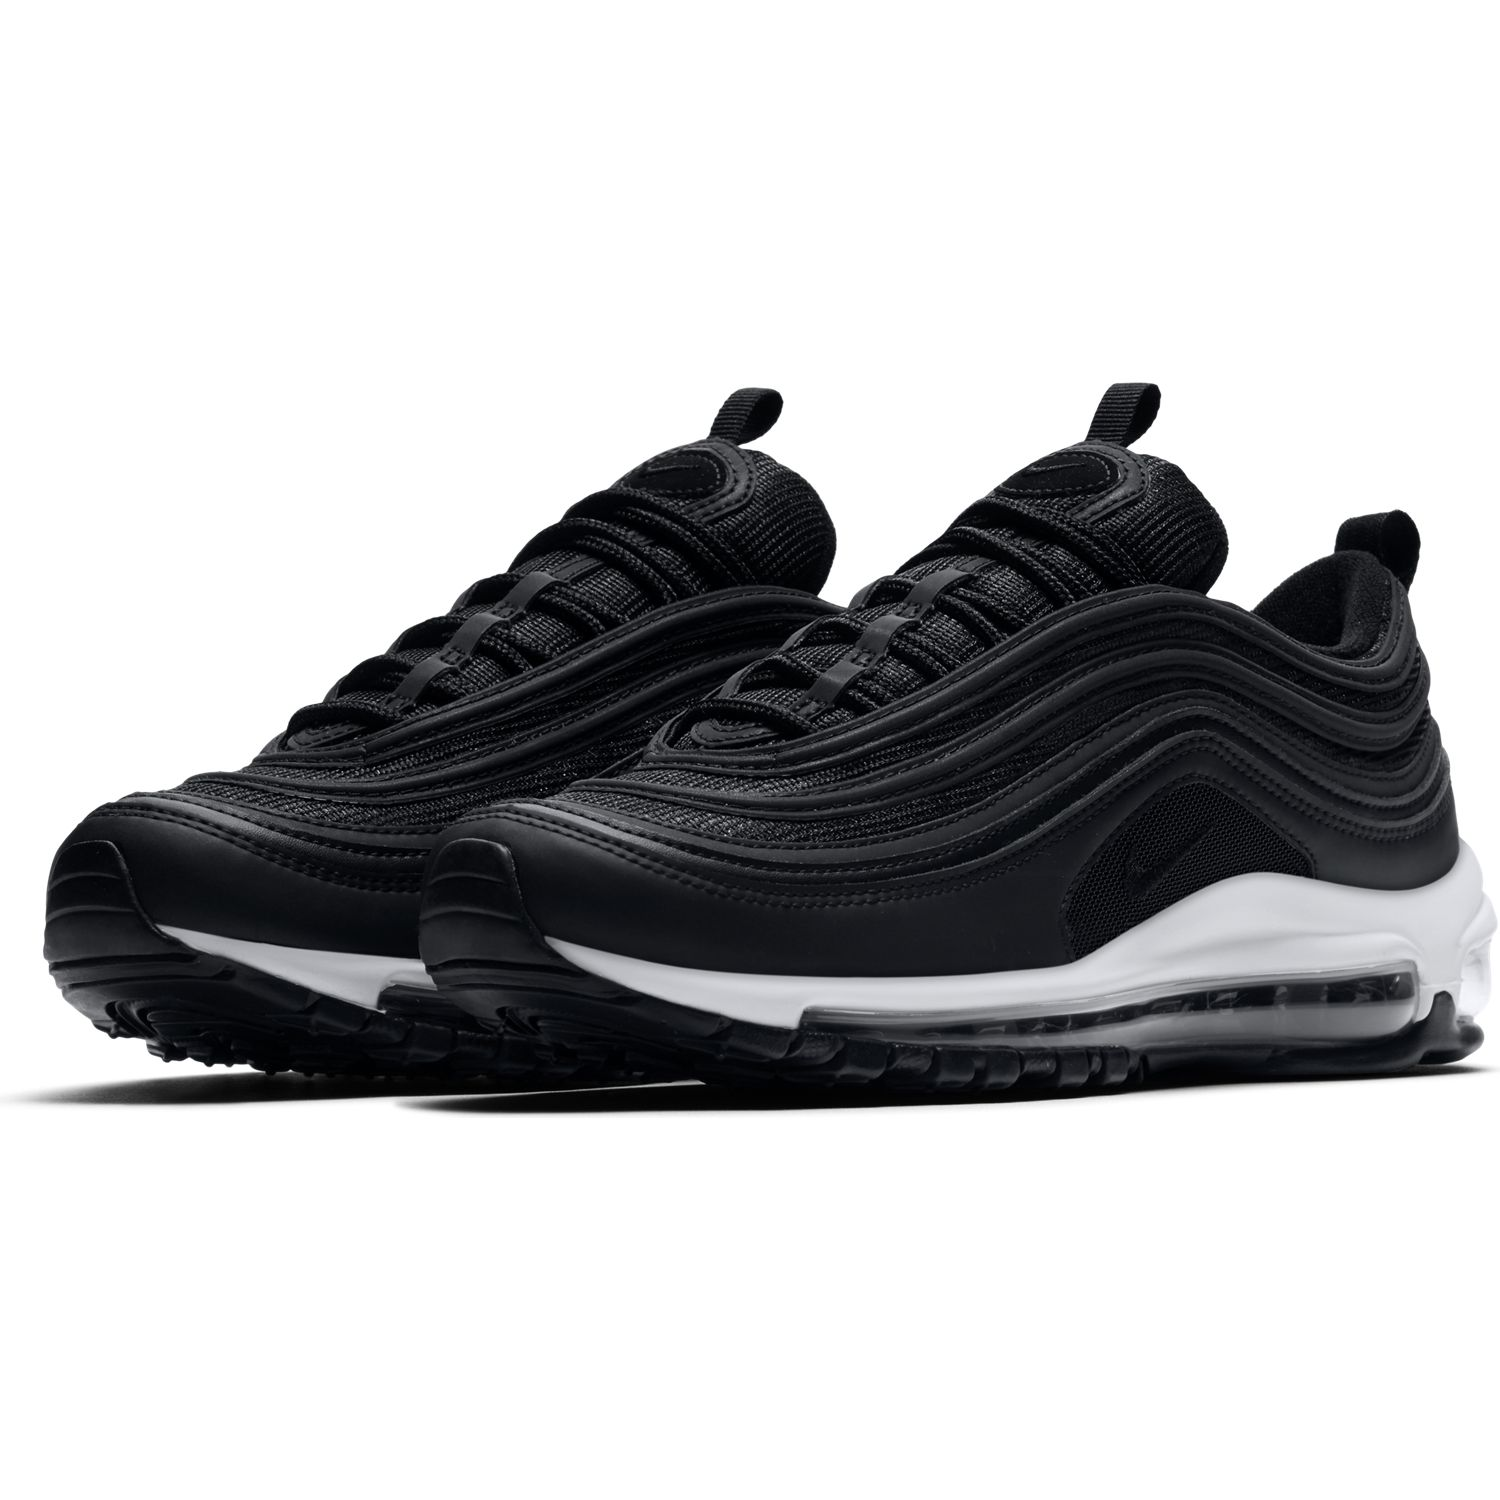 Nike Baskets Air Max 97 WMNS 921733 006